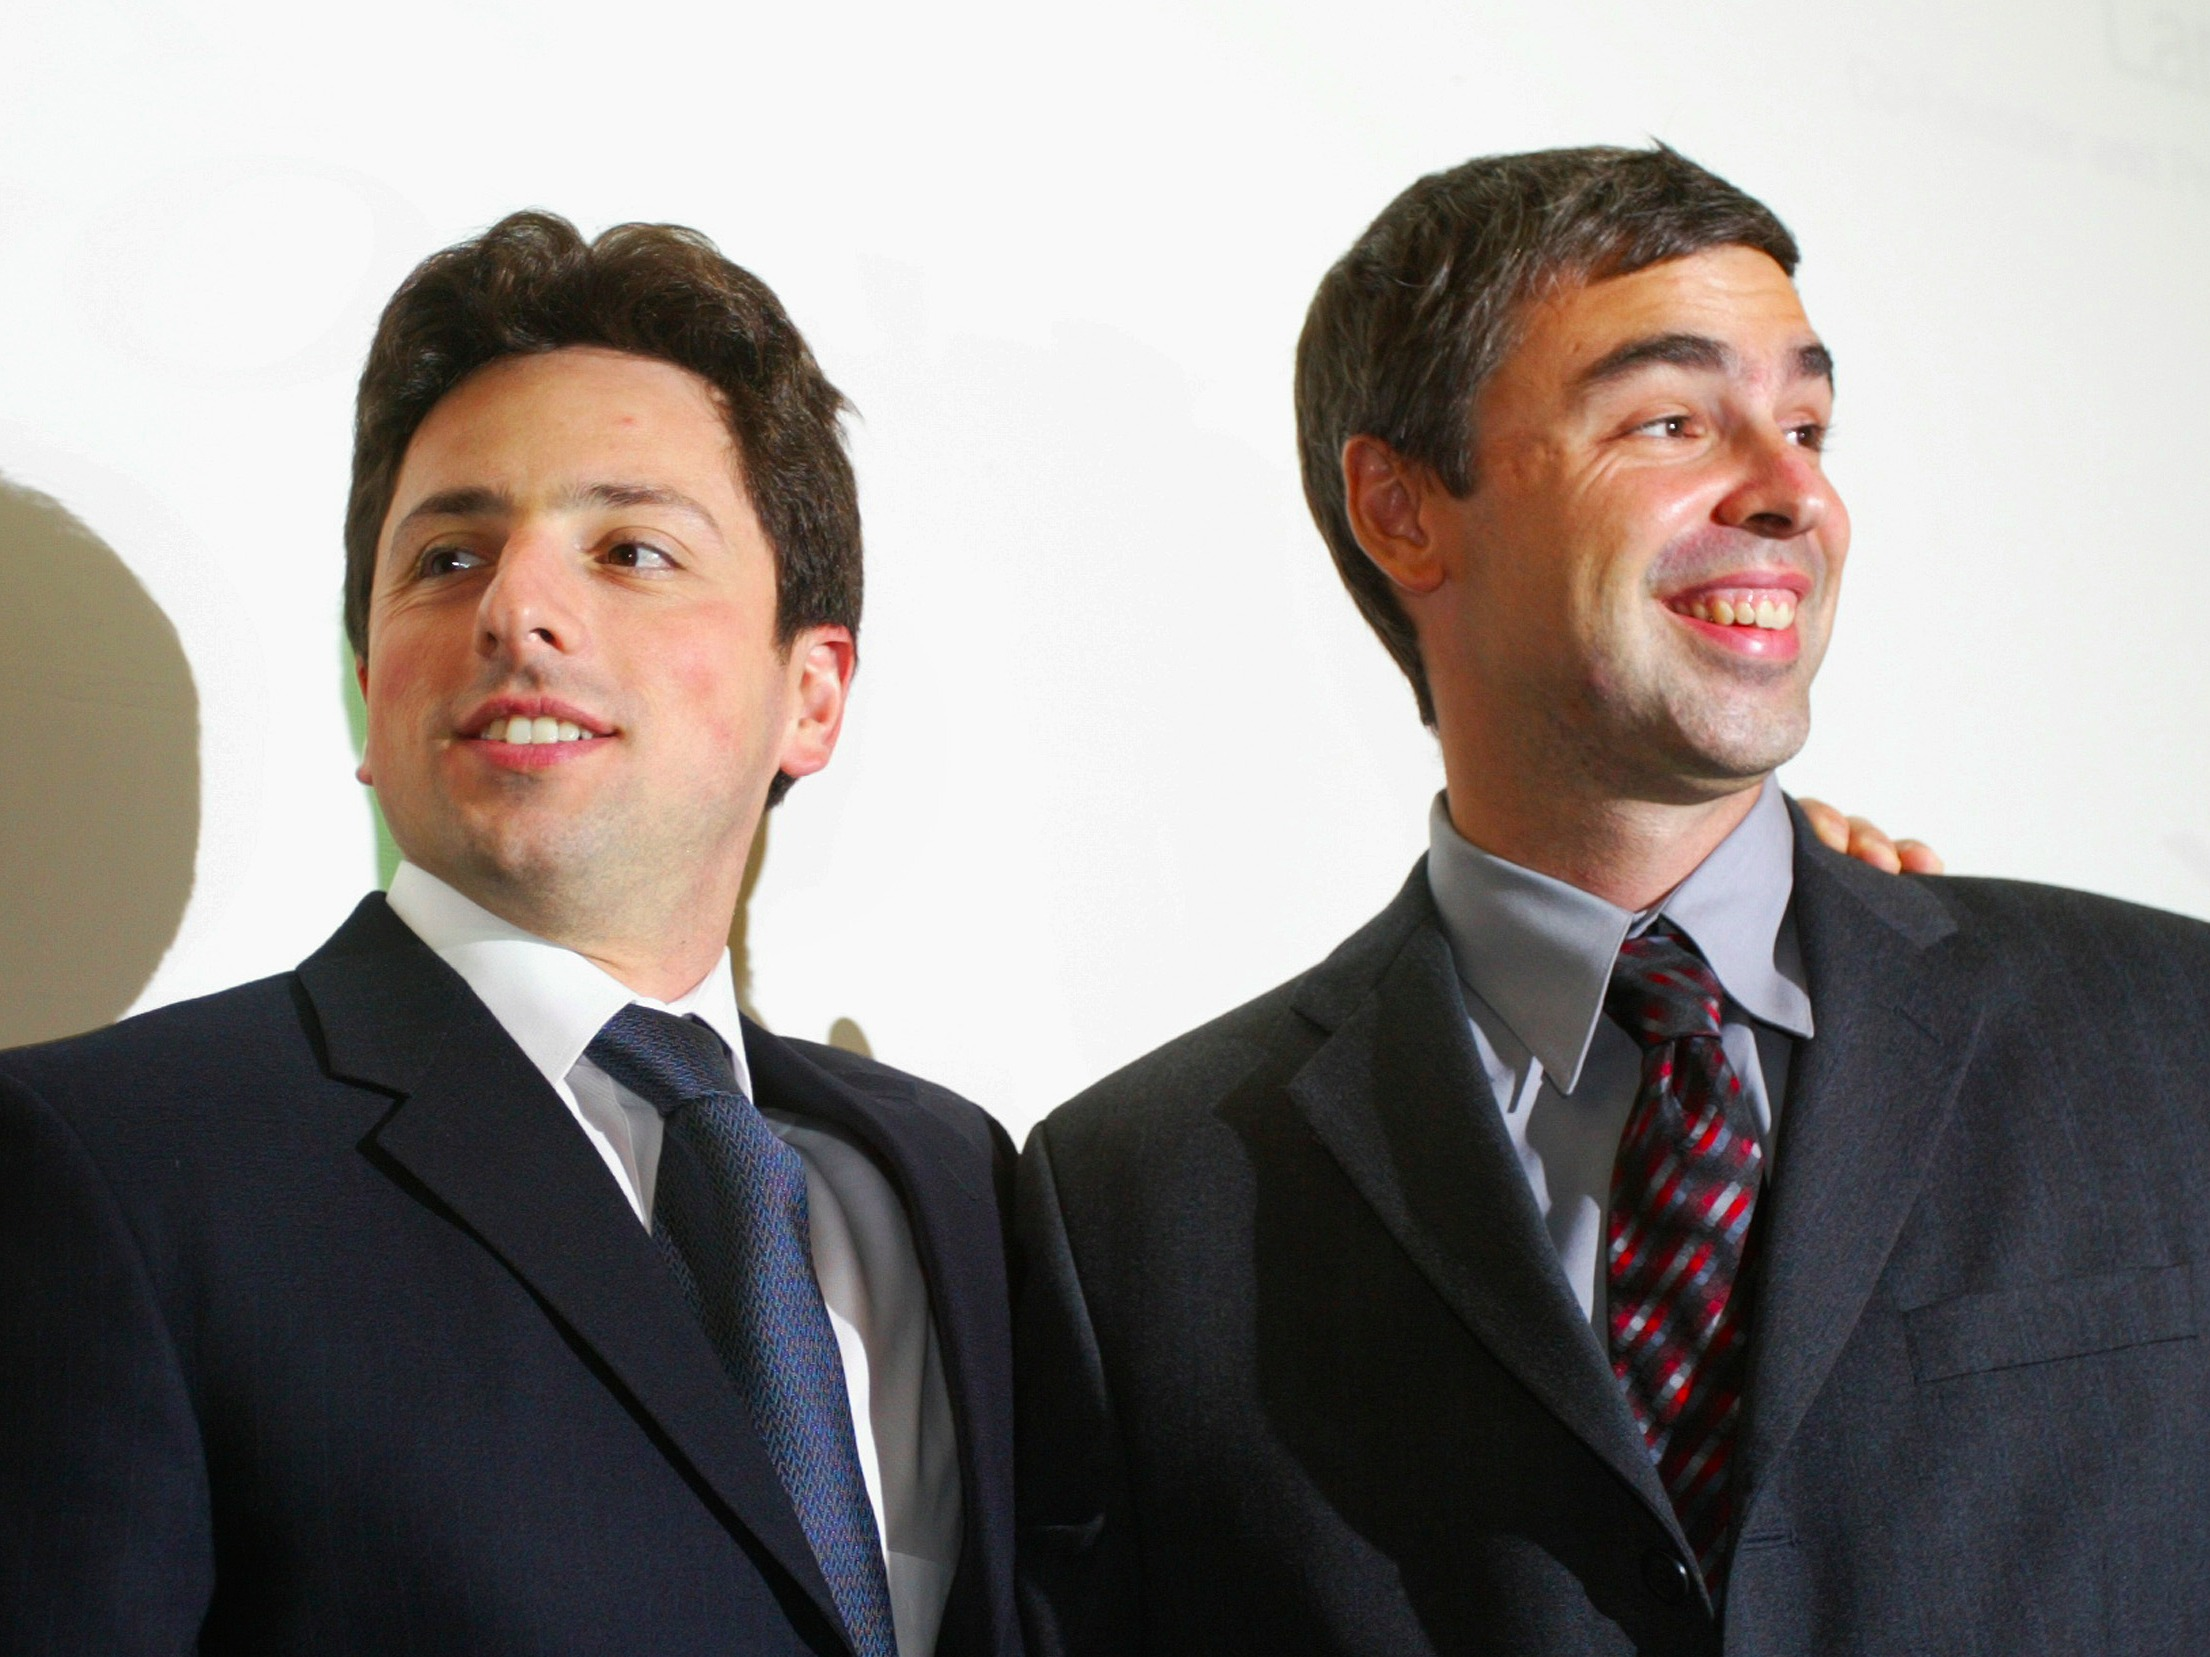 Google's Larry Page and Sergey Brin made about $8 billion in one.